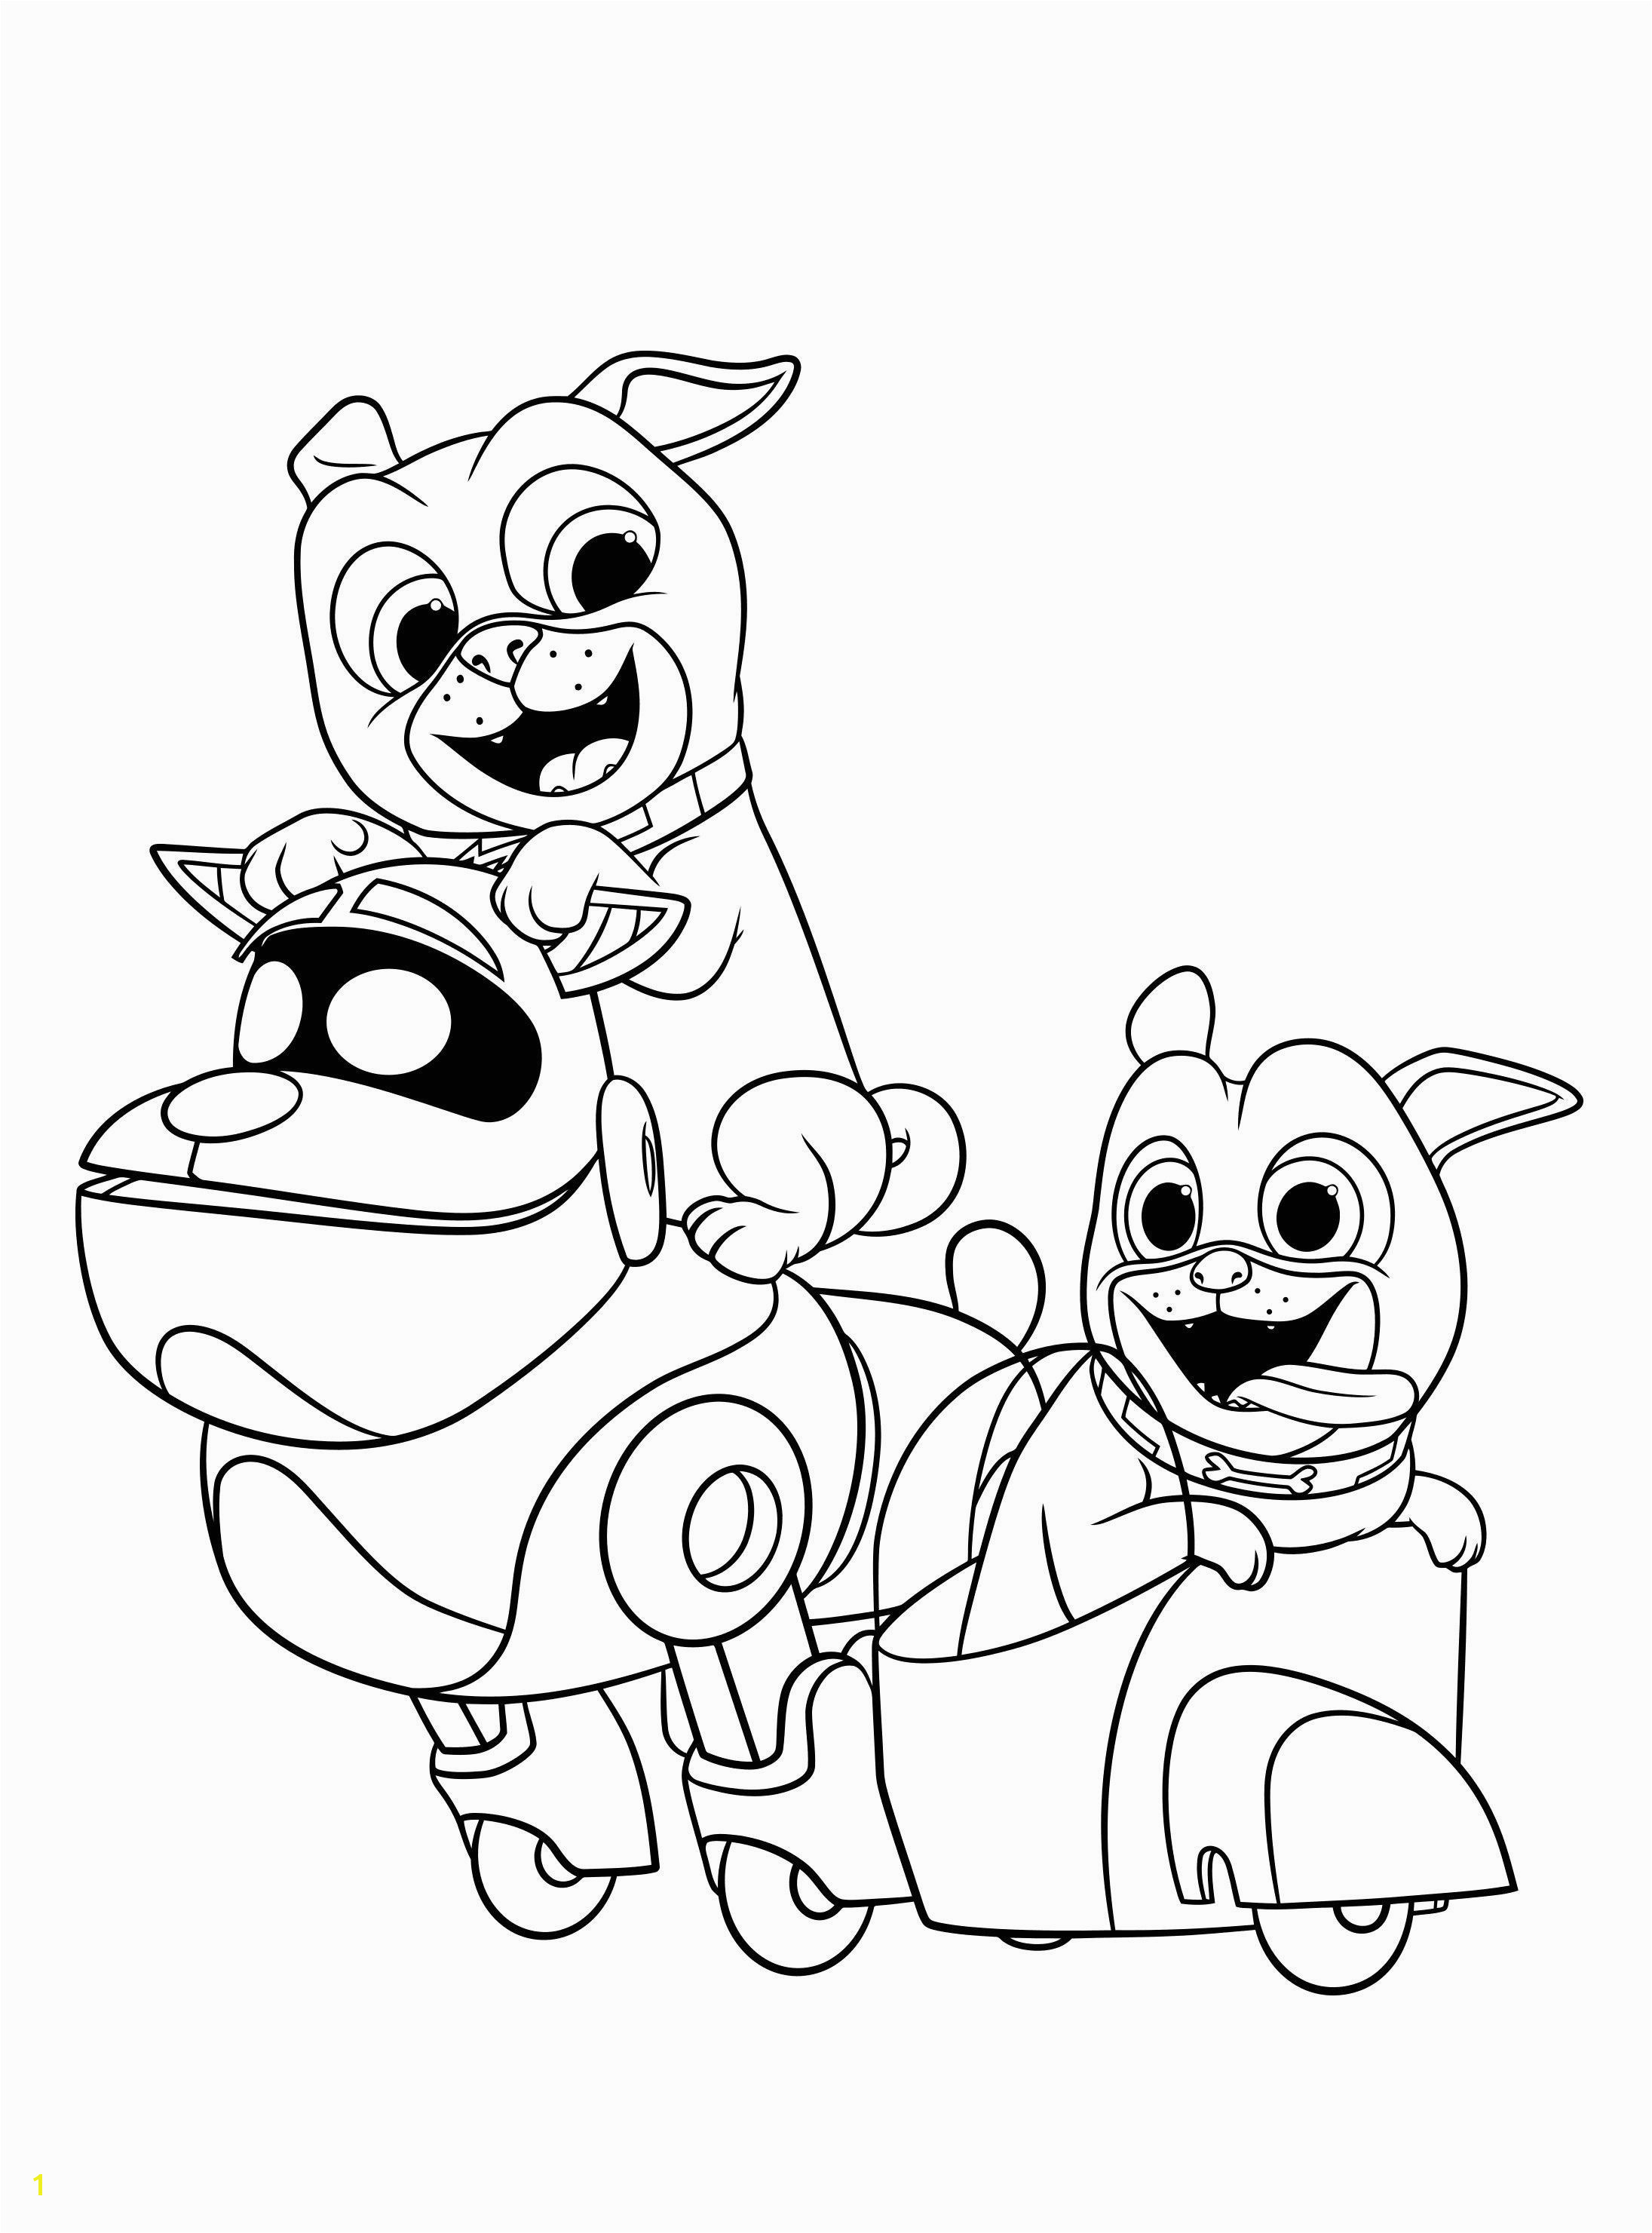 Puppy Dog Pals Printable Coloring Pages Puppy Dog Pals Coloring Pages – Through the Thousands Of Photos On